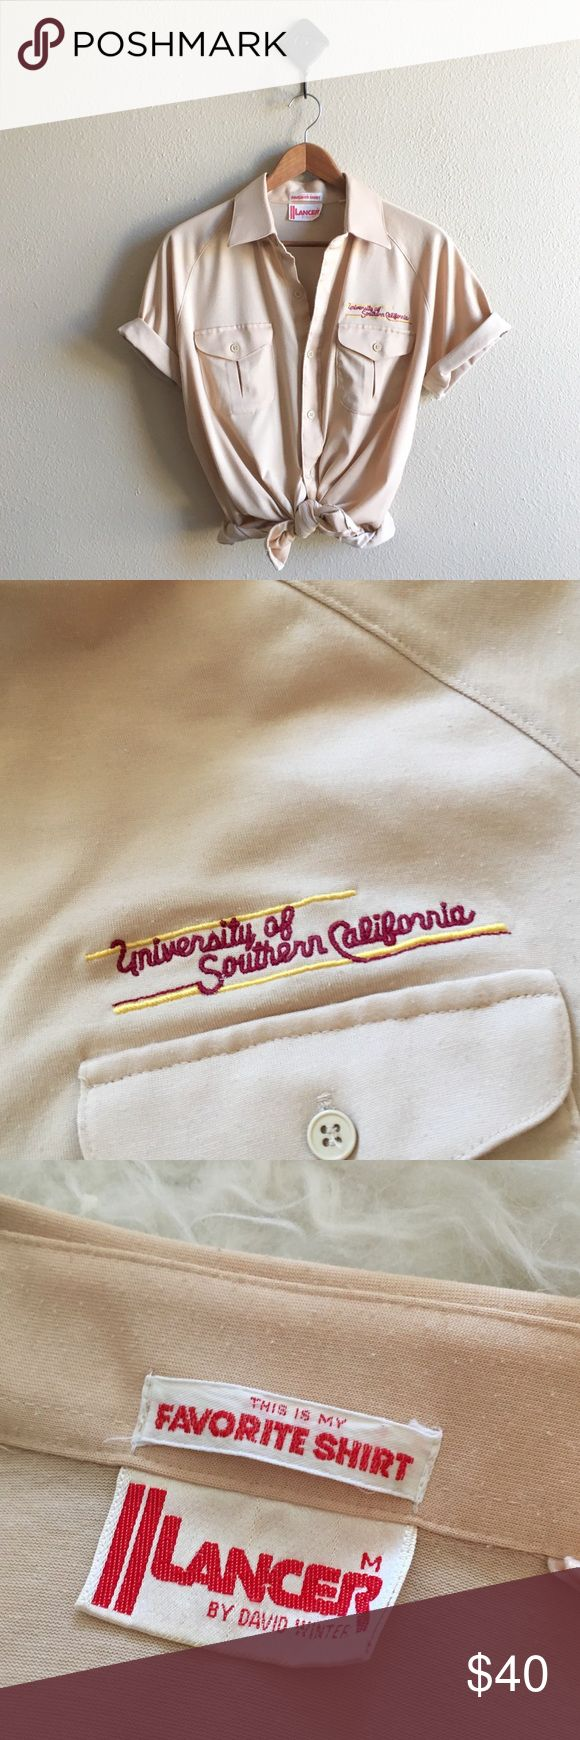 '70s / USC Polo Shirt Classic retro polo tee with USC embroidery. Unisex, fits men's small or women's for the oversized look. Check measurements. Excellent vintage condition!  BRAND: Lancer by David Winter MATERIAL: cotton / poly YEAR/ERA: 70s LABEL SIZE: M BEST FIT: M  MEASUREMENTS: Chest 20 inches Length 27 inches  ☒ I do not model or trade, sorry! ❁ Check out my closet for more vintage! Vintage Tops Button Down Shirts